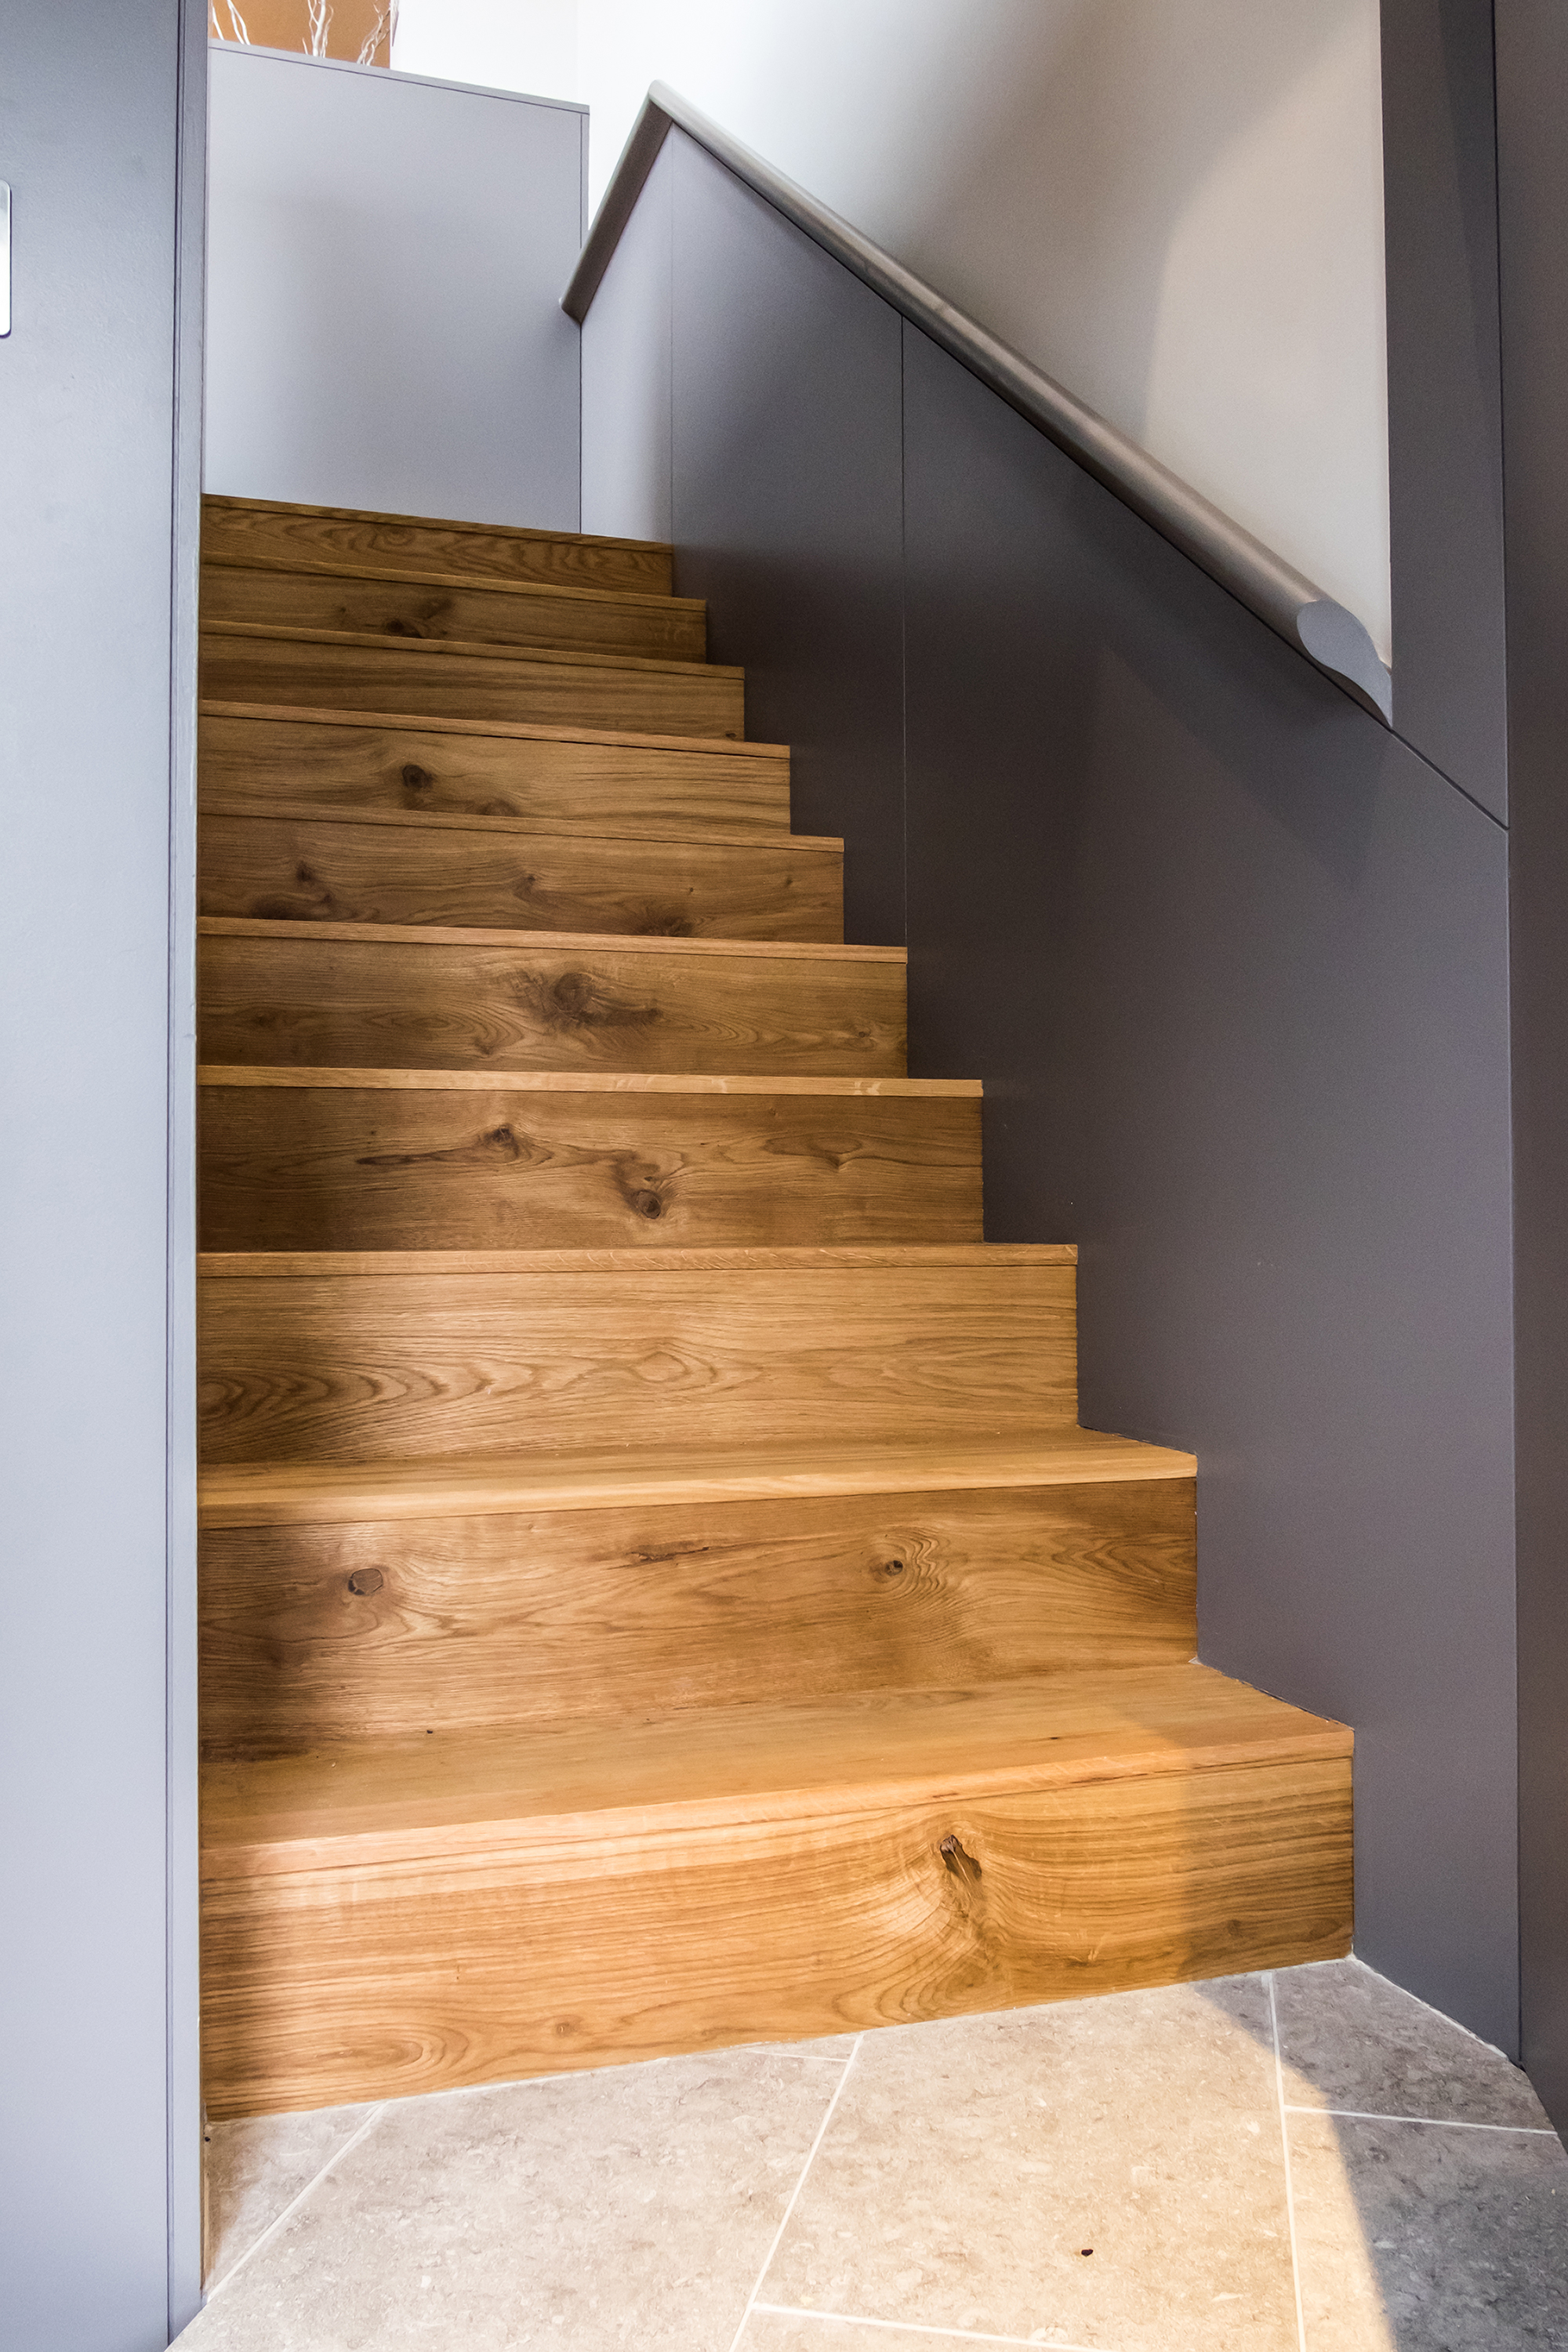 Looking up a set of wooden stairs